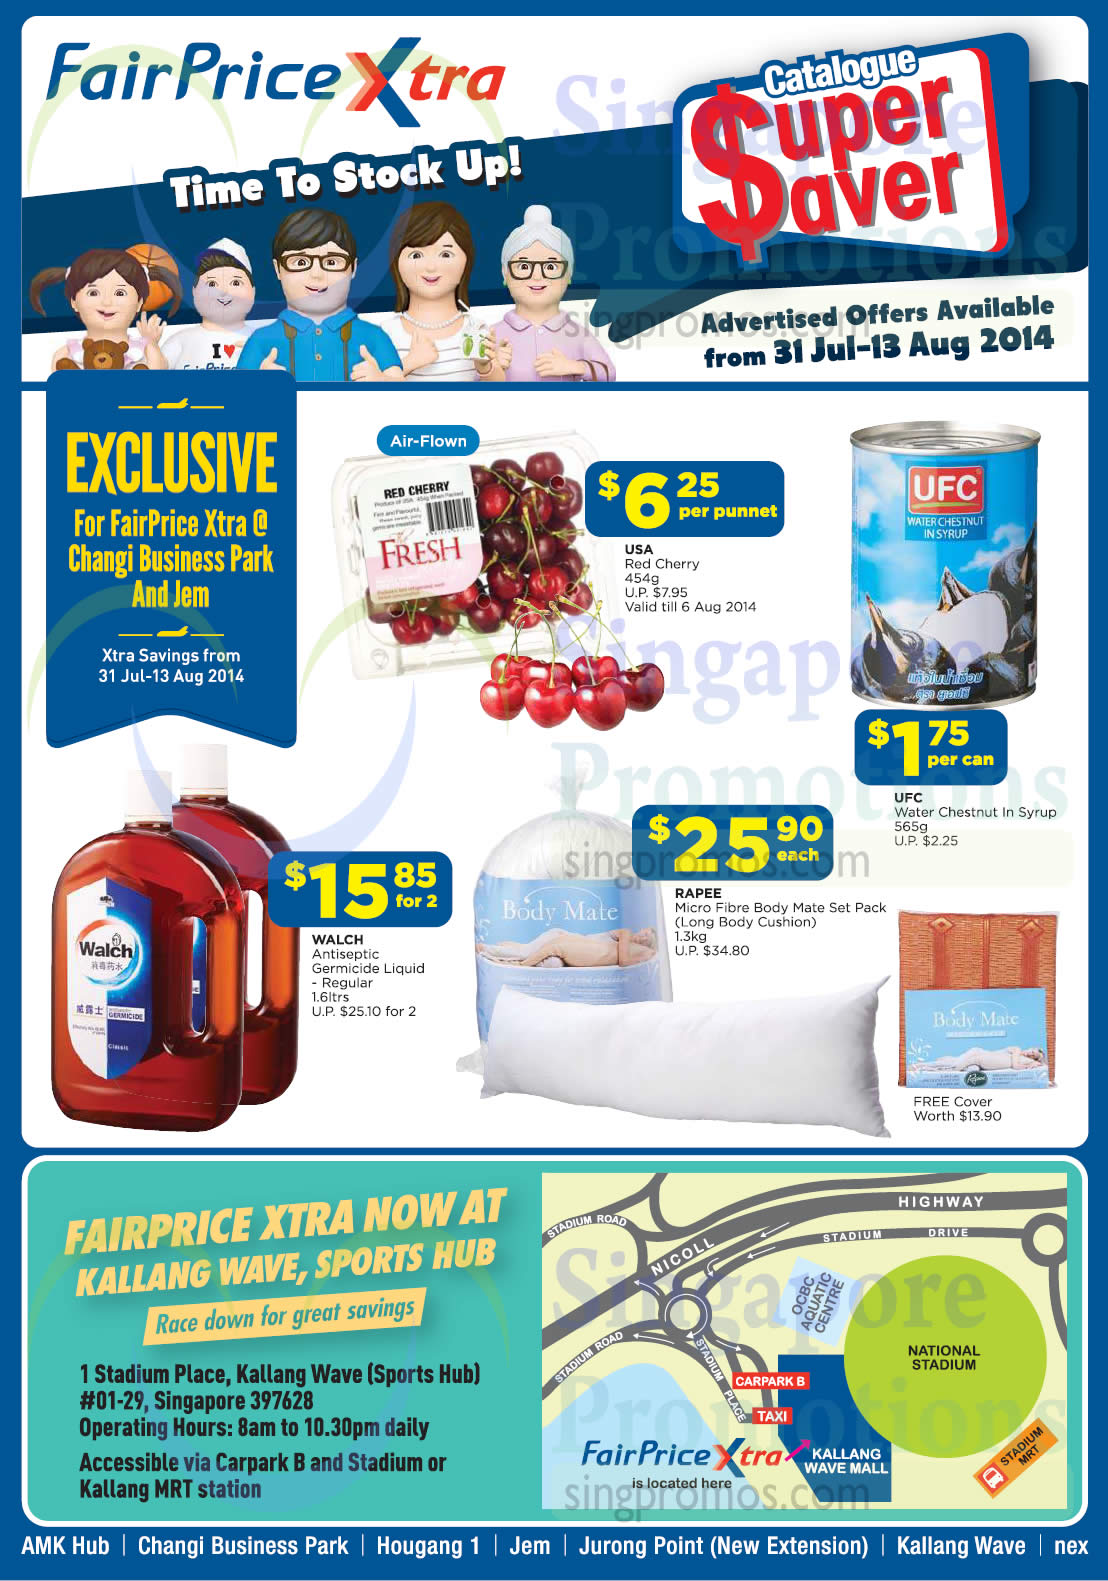 Fairprice Xtra Exclusive, Kallang Wave Store Opening